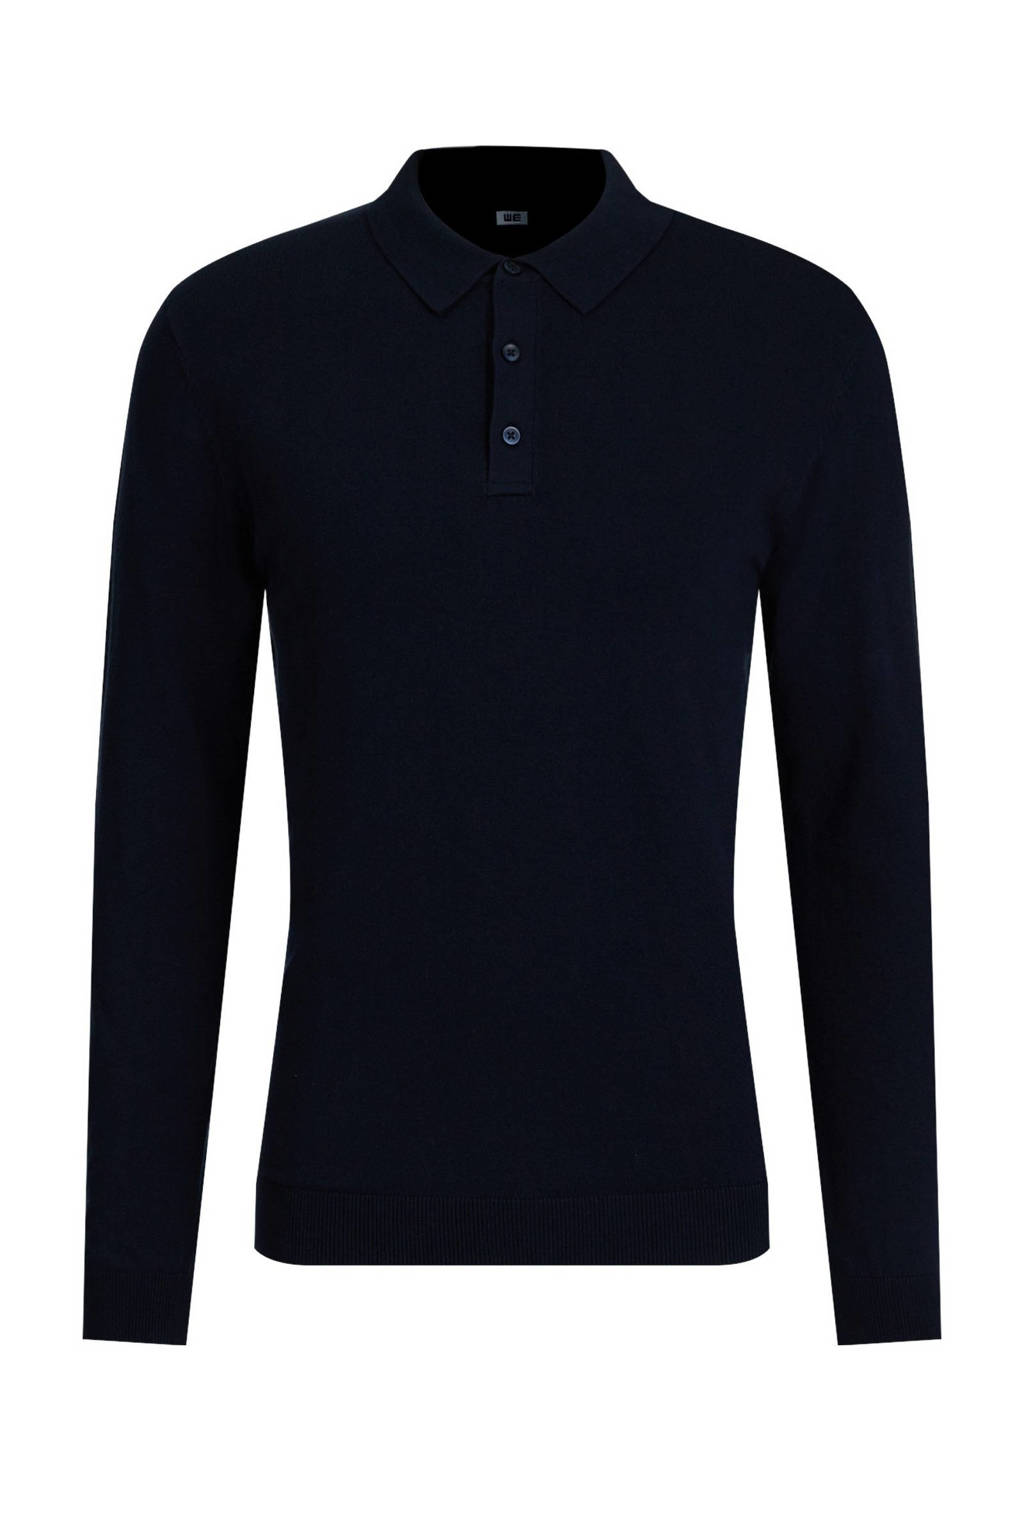 WE Fashion Fundamentals slim fit polo donkerblauw, Donkerblauw